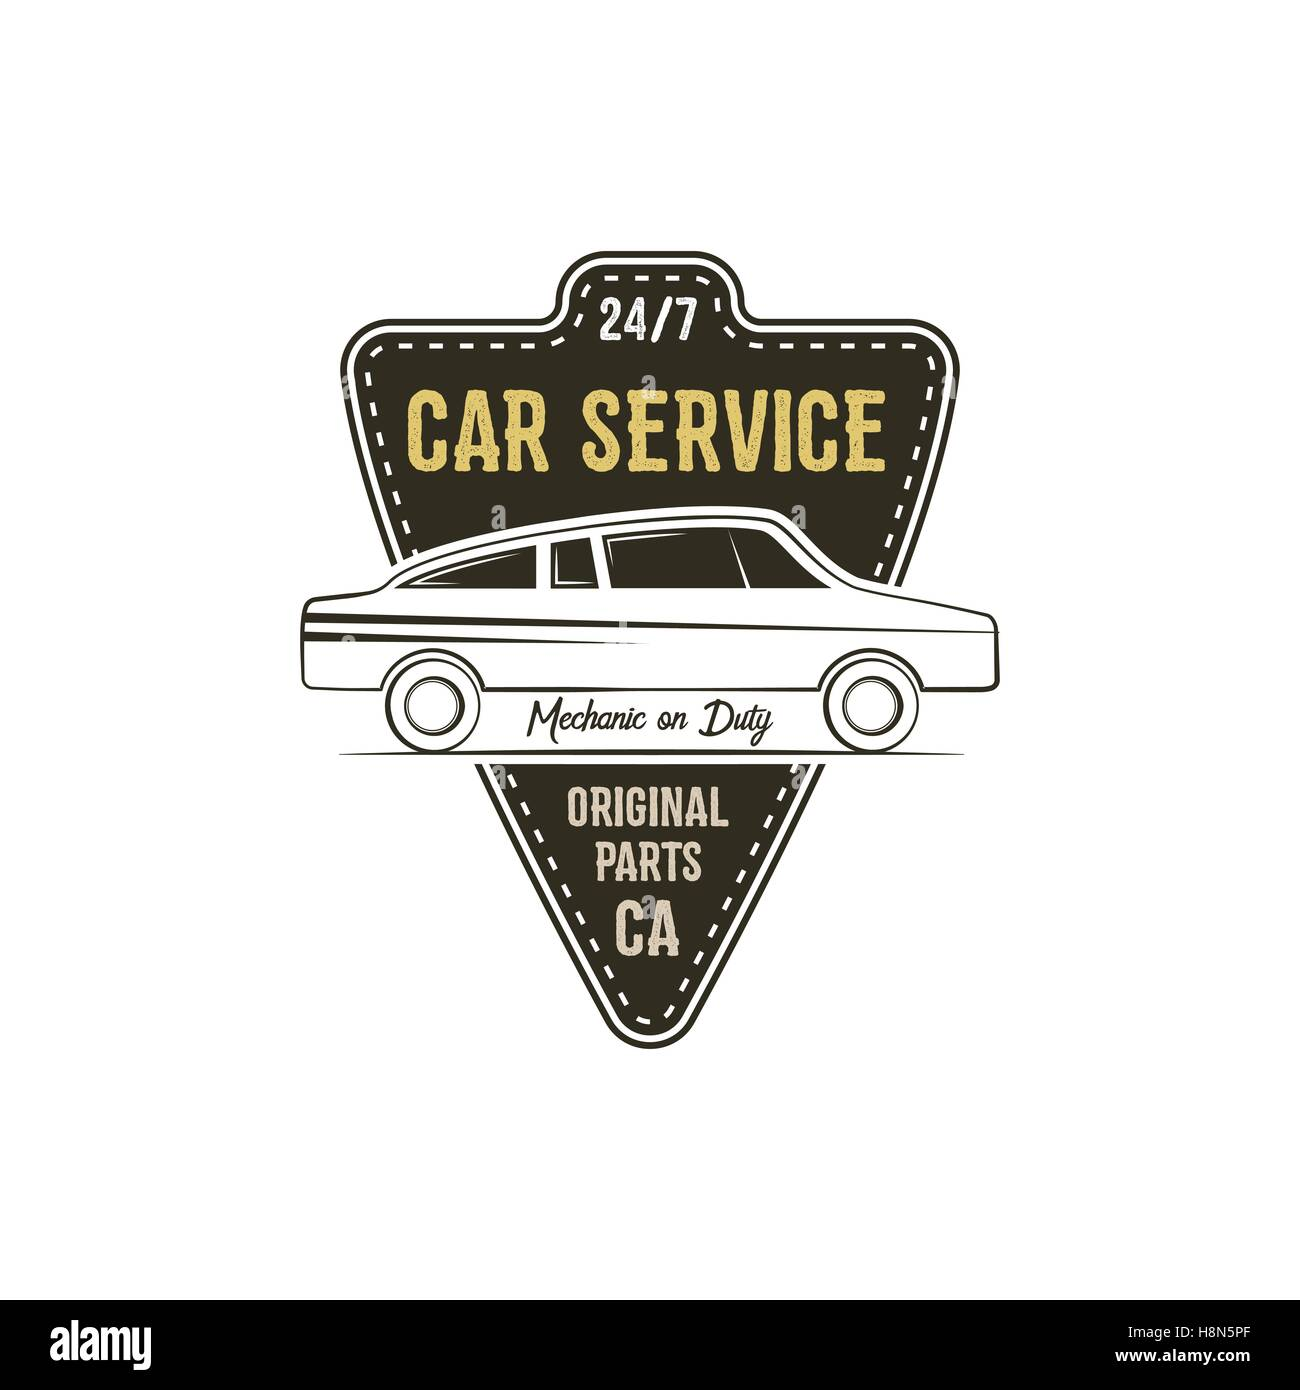 9df99008 Car service label. Vintage tee design graphics, retro colors typography  print. Custom t-shirt stamp, teeshirt graphic. Use as emblem, logo on web.  Vector.